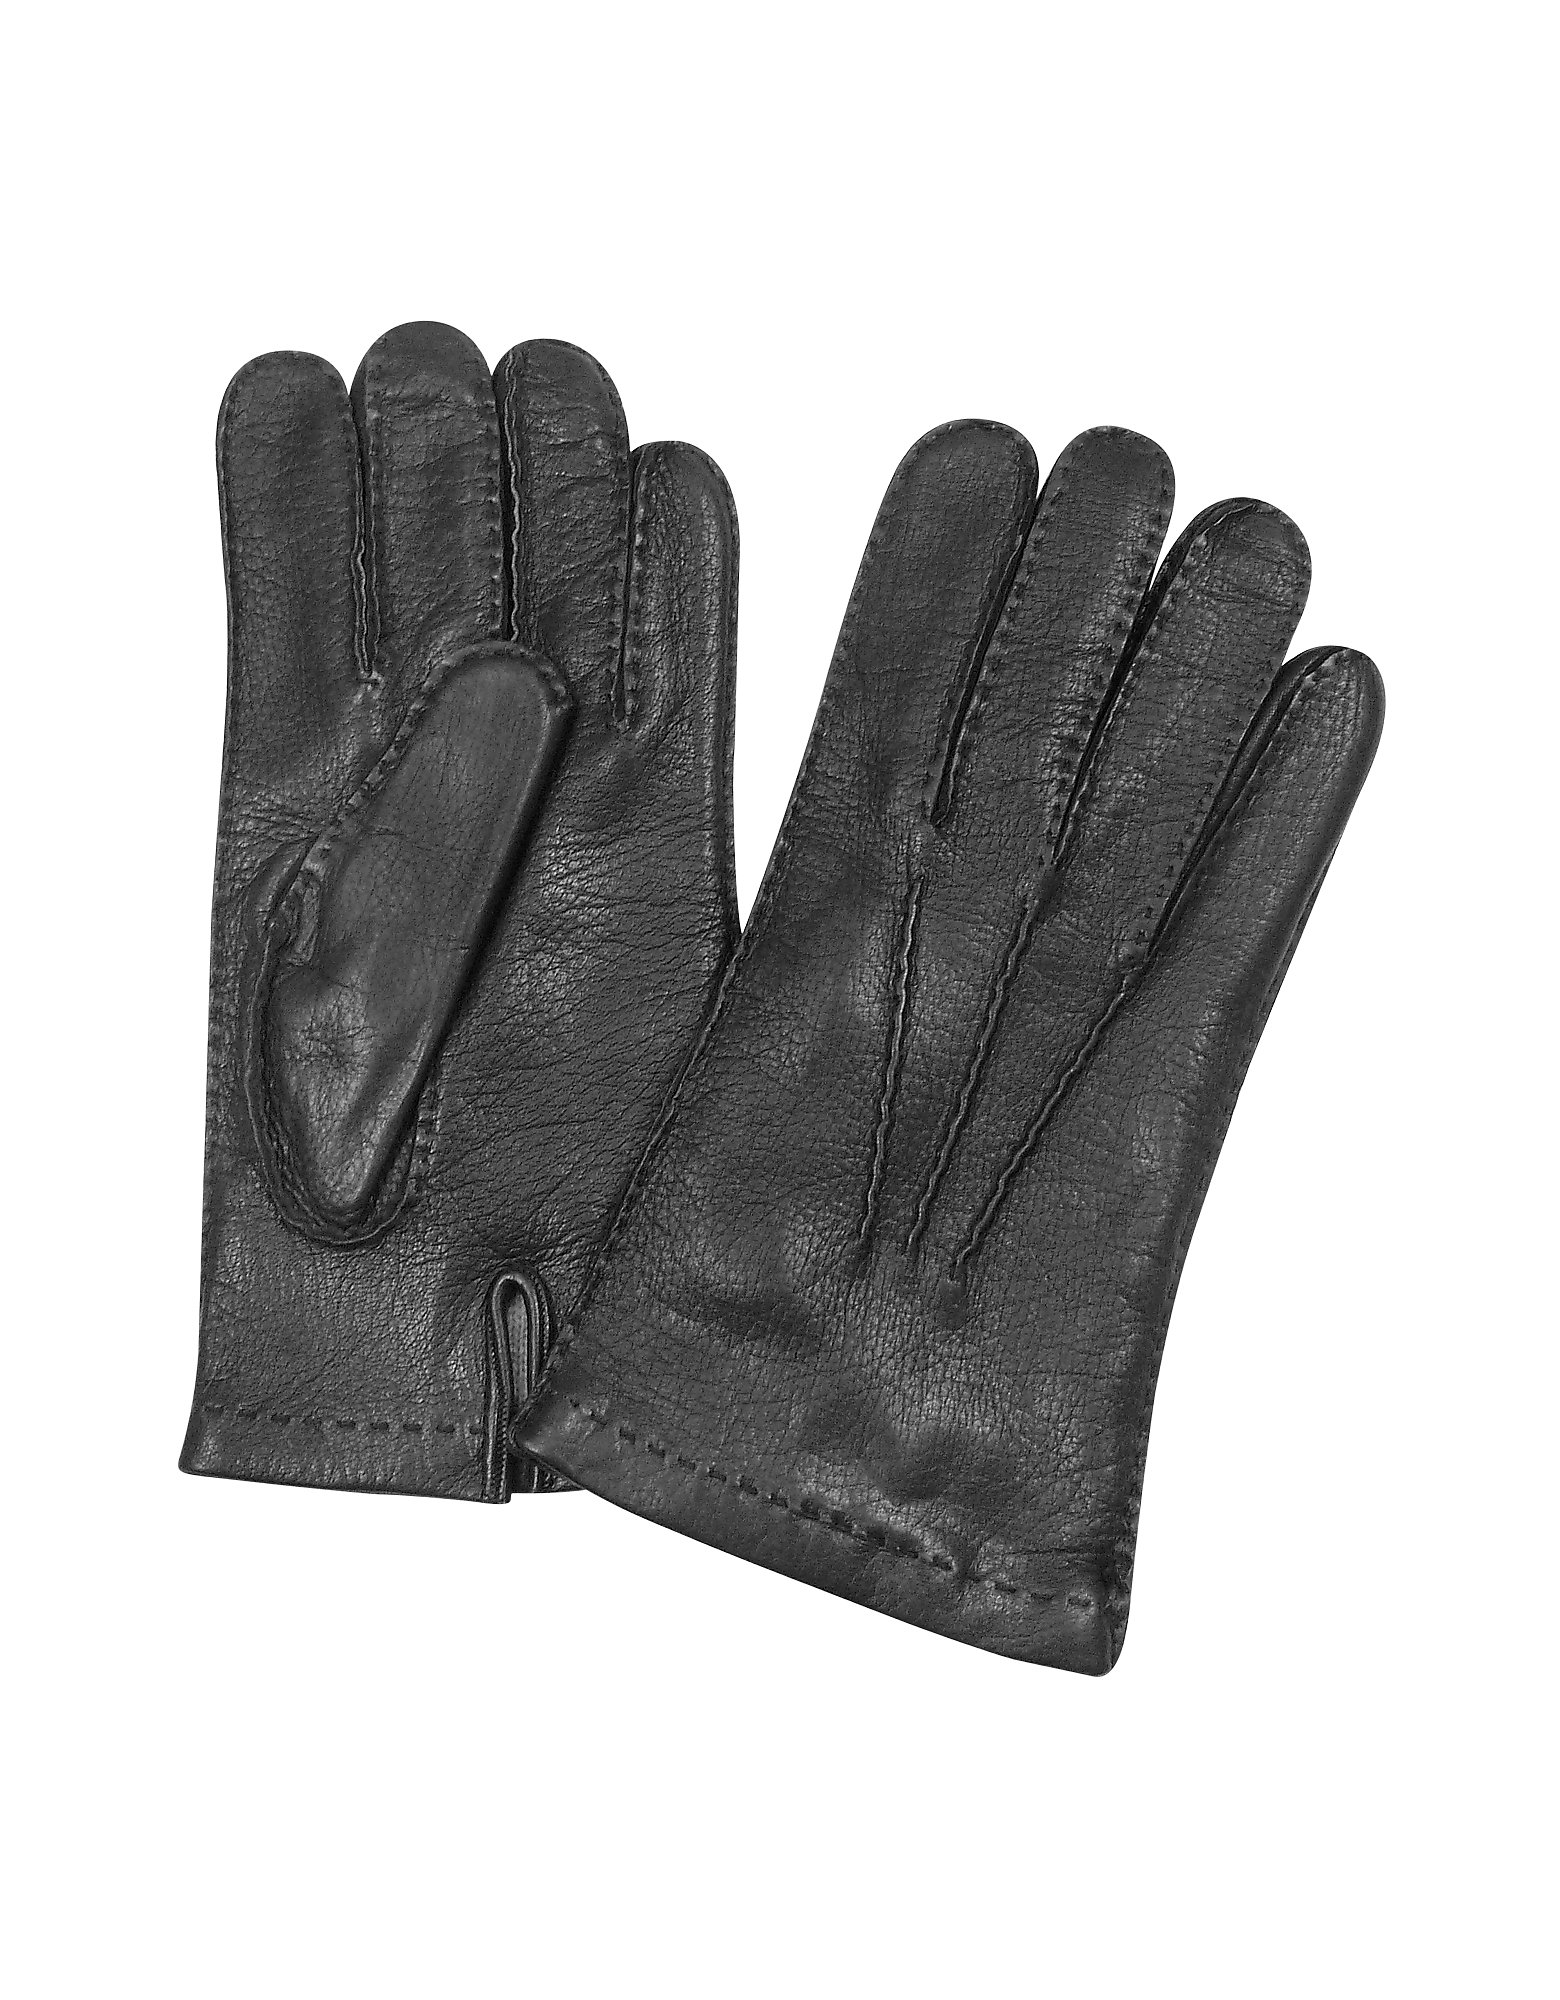 Men's Cashmere Lined Black Italian Deer Leather Gloves от Forzieri.com INT